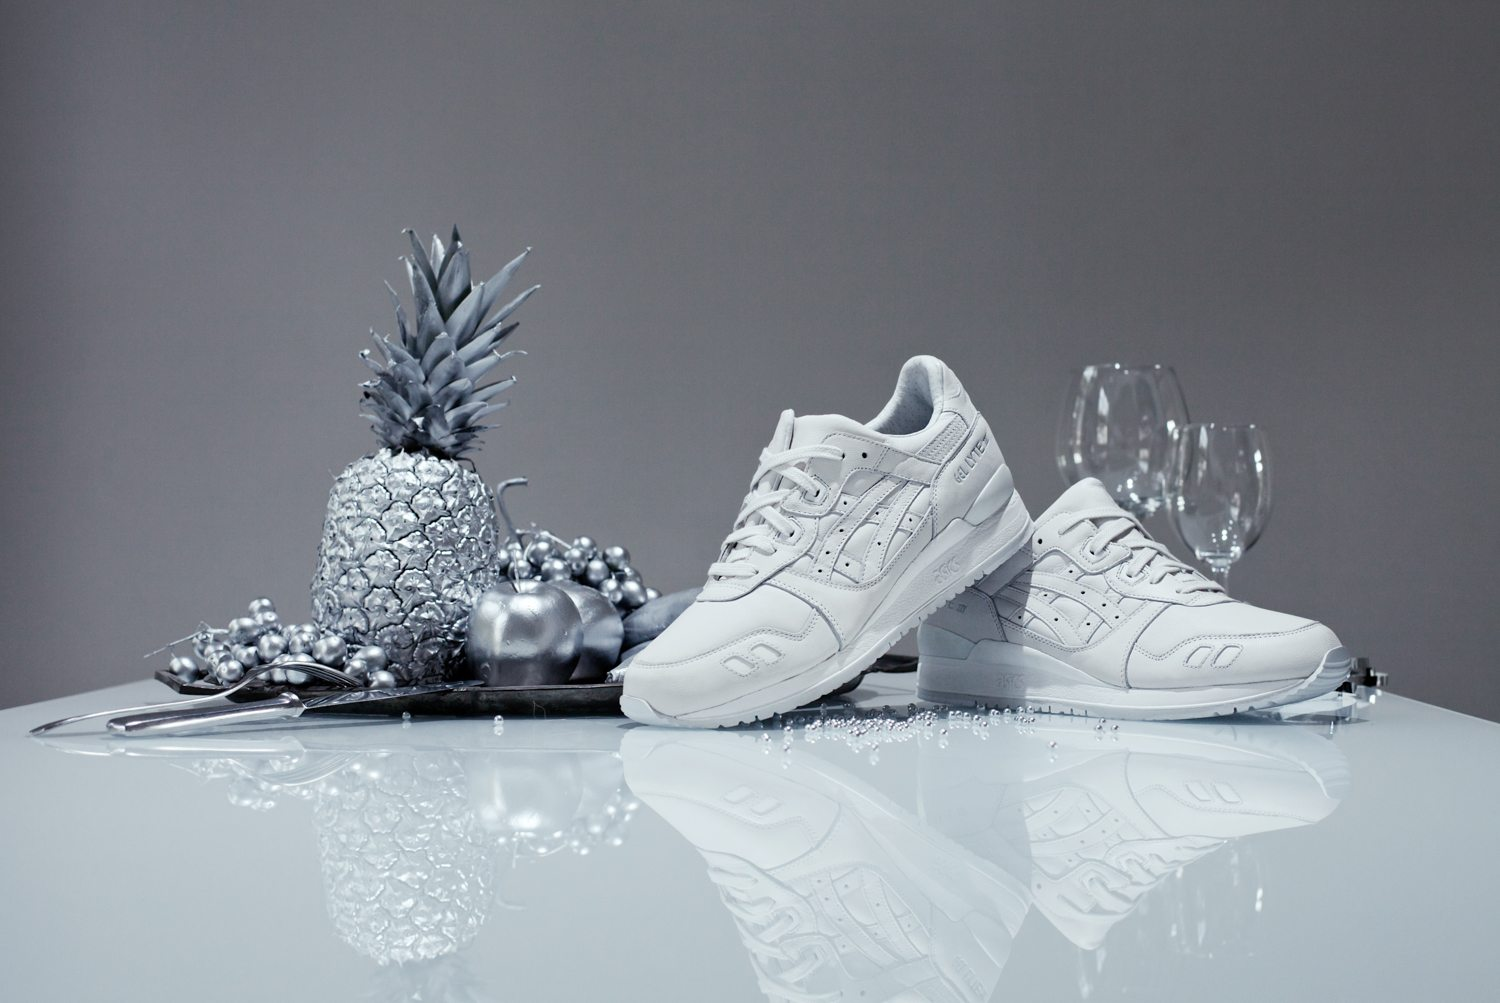 Atmos x Asics Gel Lyte III B Day Dinner 5